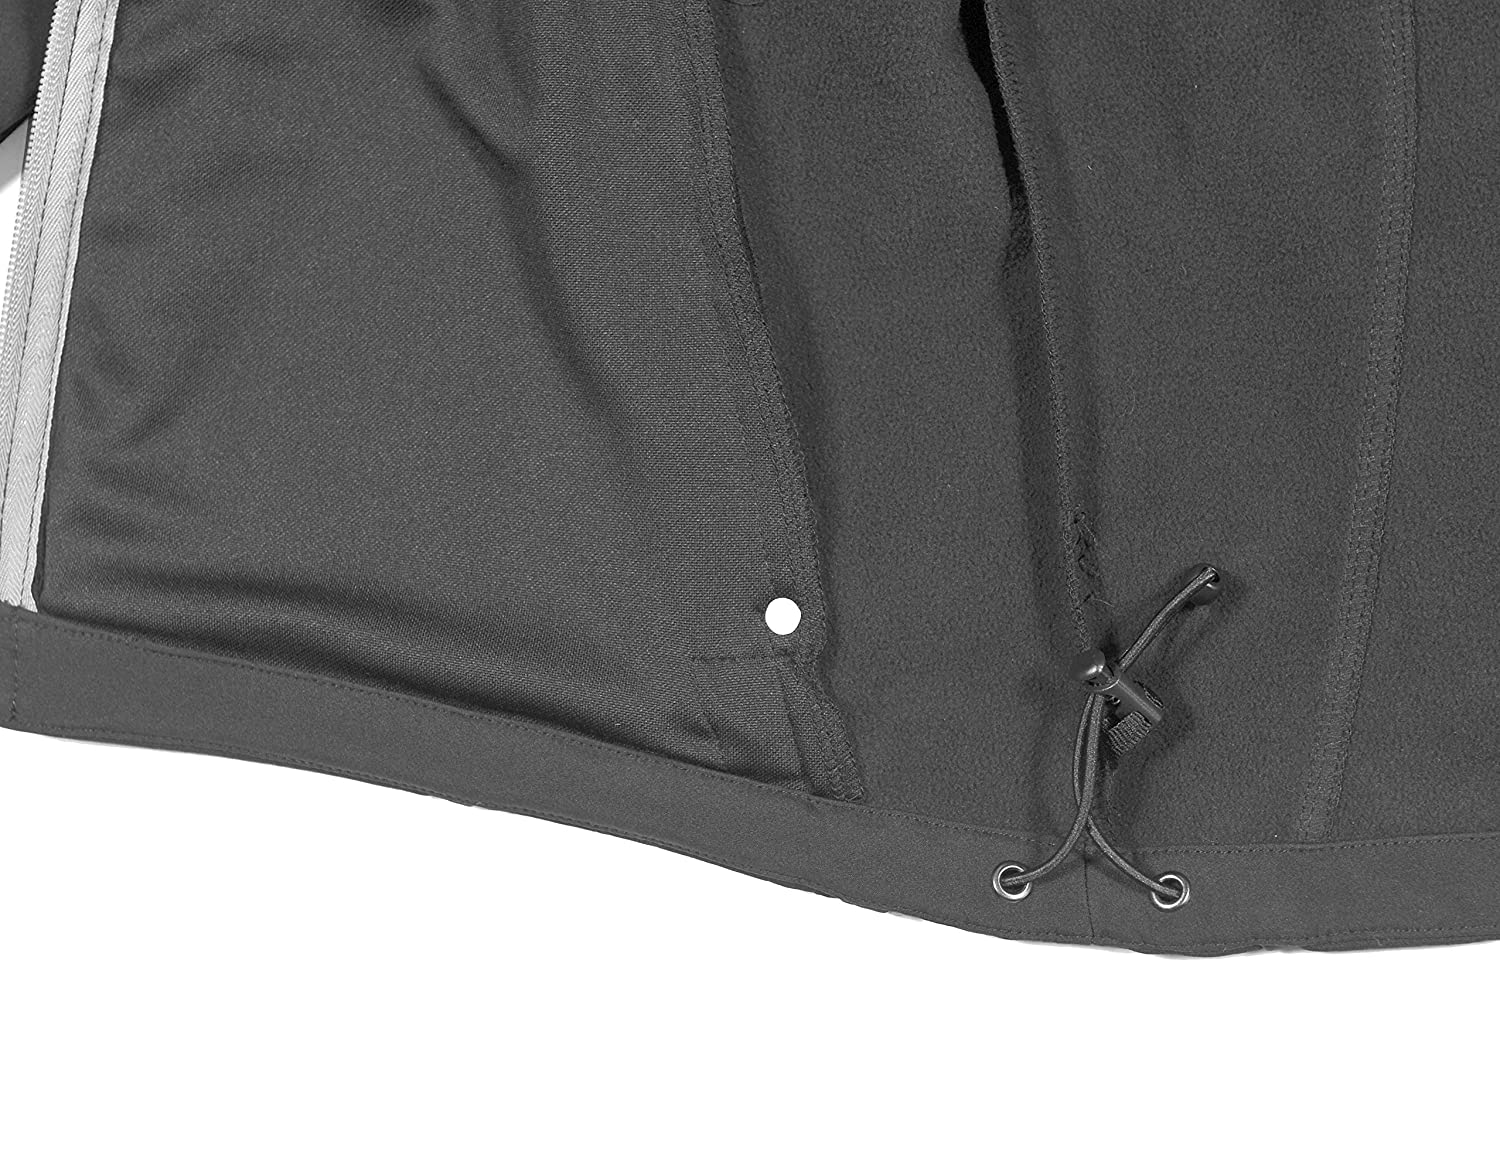 Fleece Lined and Water Repellent Little Donkey Andy Men/'s Softshell Jacket with Removable Hood